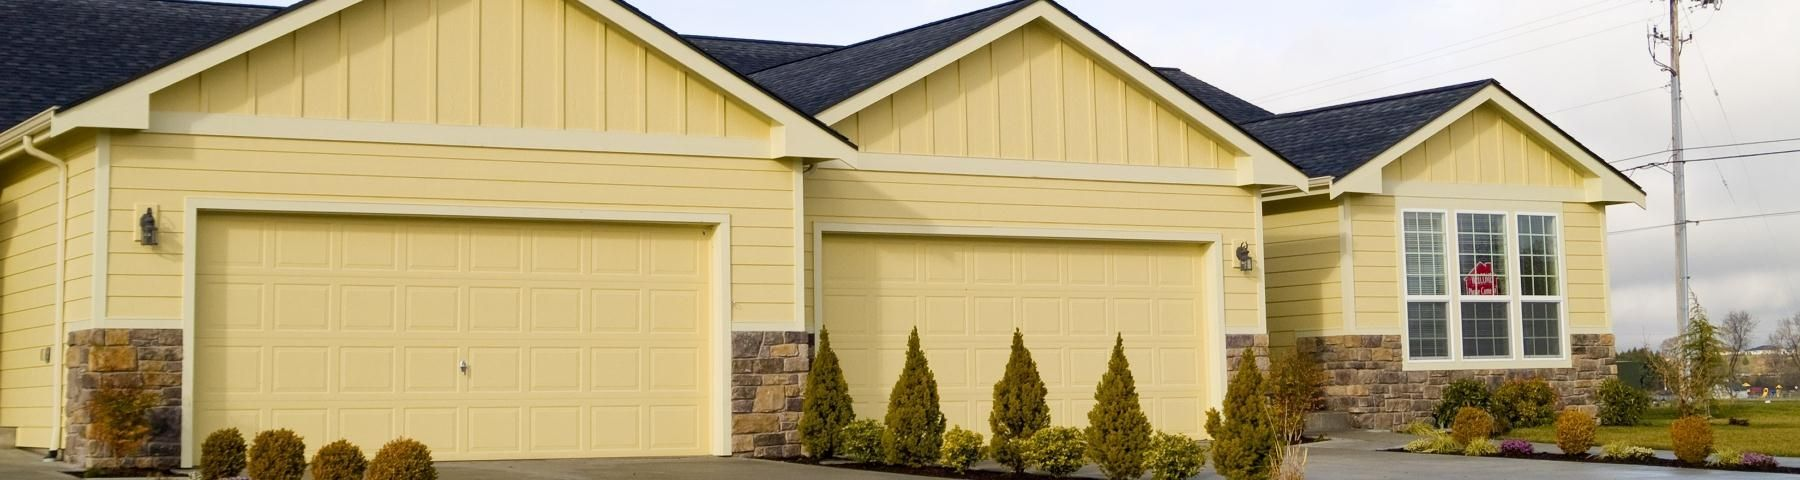 High Quality EdS Garage Doors Remus For House